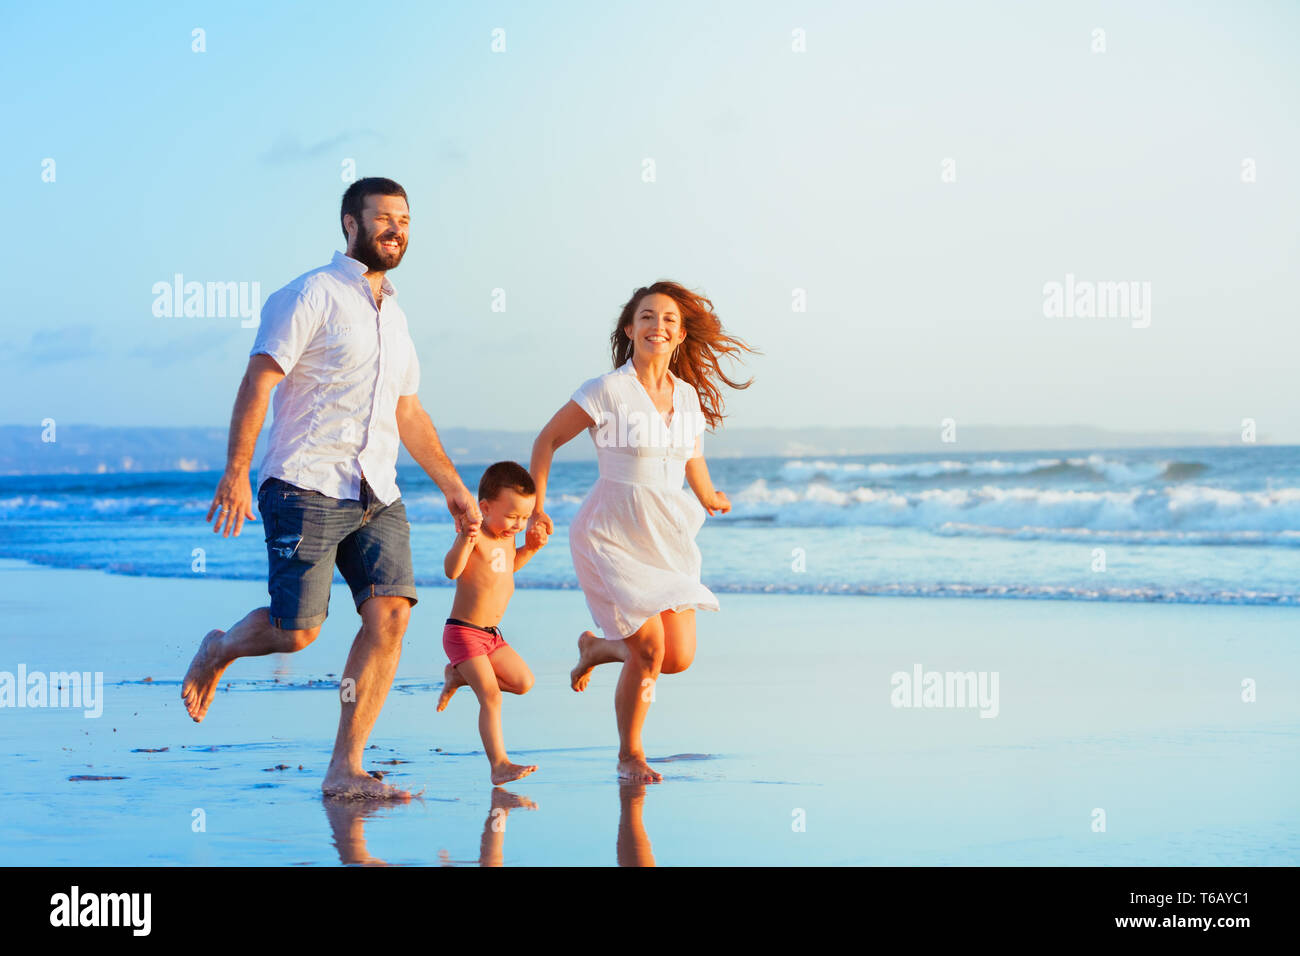 Happy family - young father, mother, baby son run together, child jump with fun by water pool along sunset sea surf on tropical beach. Travel lifestyl - Stock Image